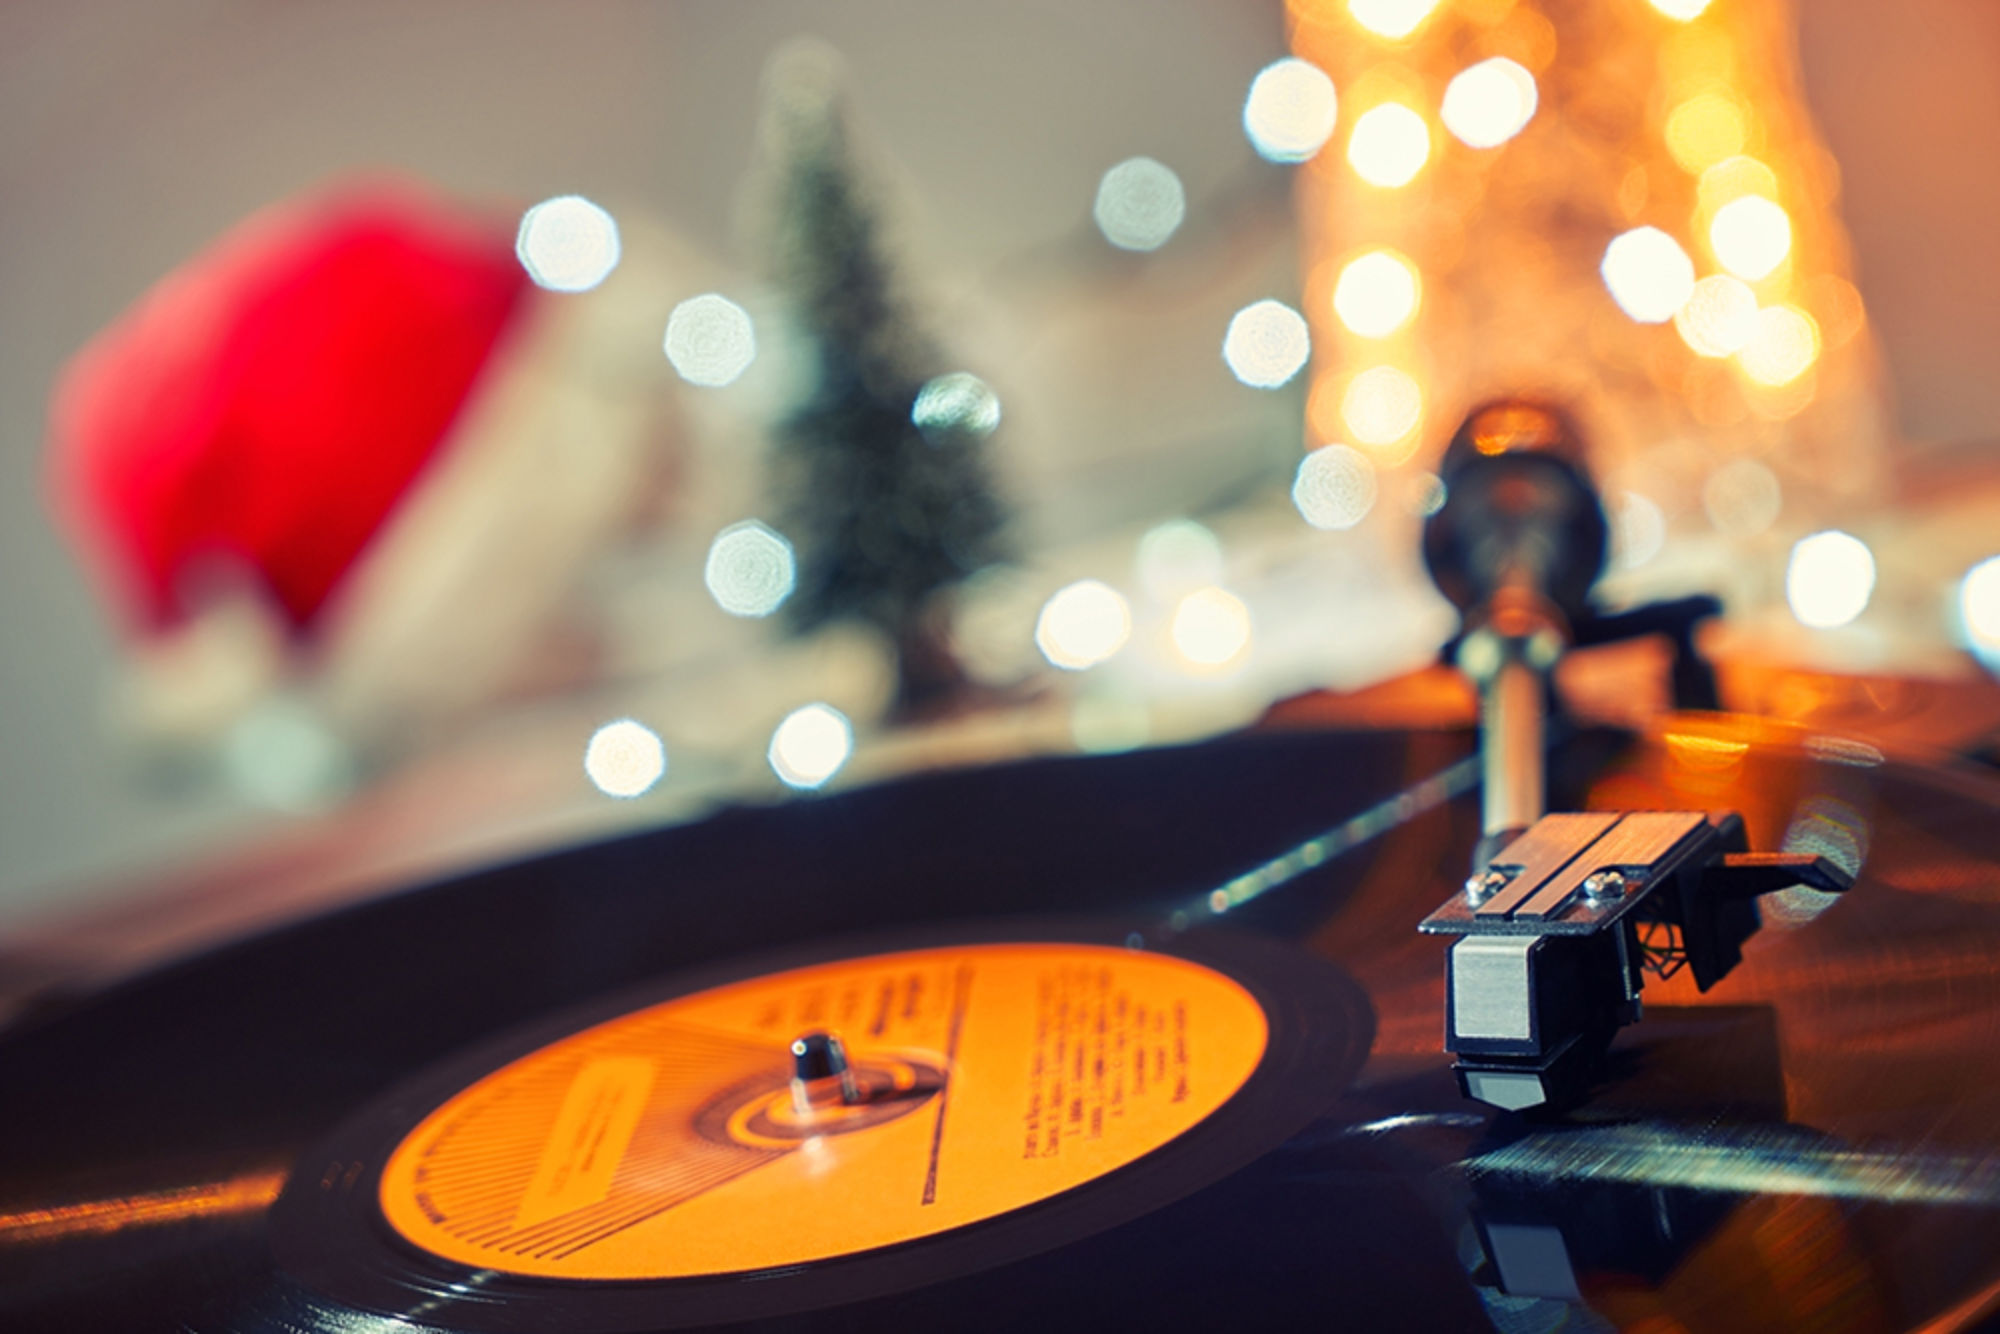 Record in front of Xmas tree